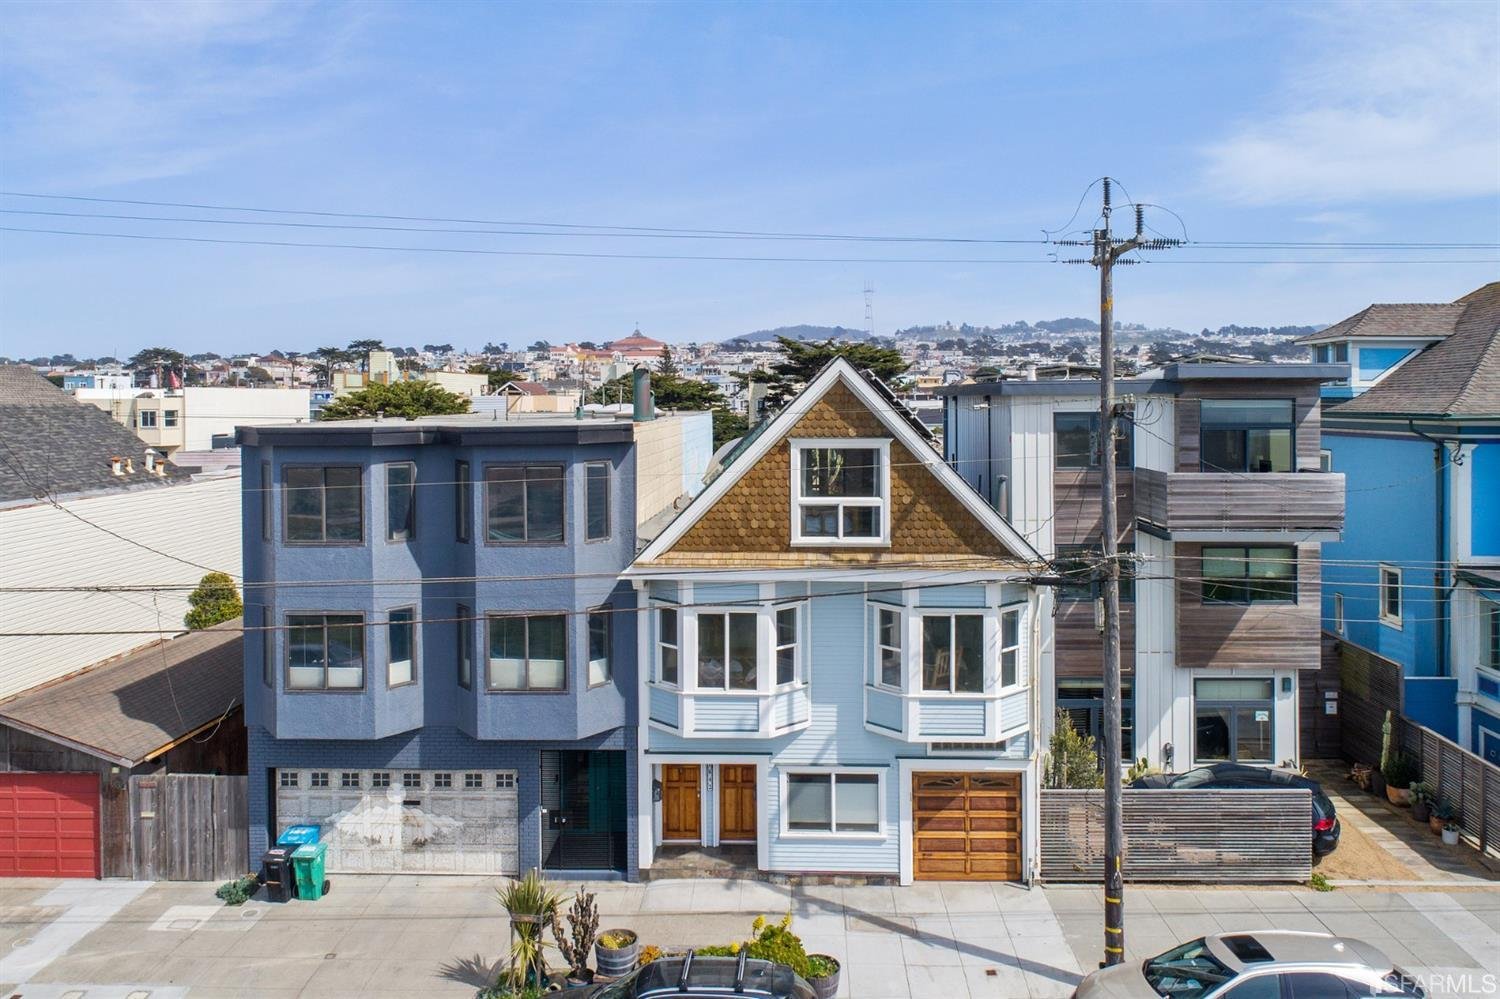 This historic beach front property is one of the original homes to line San Francisco's Great Highway. This property was constructed in 1909 and maintained in a manner that shows incredible pride of ownership. Truly a work of art and one of a kind; this home has character, warmth and soul like few others.Every inch of this home has been carefully and meticulously upgraded with an artist touch. The home smells of wood and has a feel of a mountain cabin; from the wainscoting; the built-in-place kitchen cabinets and counter tops; to the cedar lined closets; fresh wood permeates your senses in every room. Whether it's the ocean views, multilevel decks, uniquely landscaped rear yard, custom and one of a kind built-ins; this property is an artistic showpiece with tremendous surf history that throws back to a simpler time before the magic of Ocean Beach was discovered in recent years.